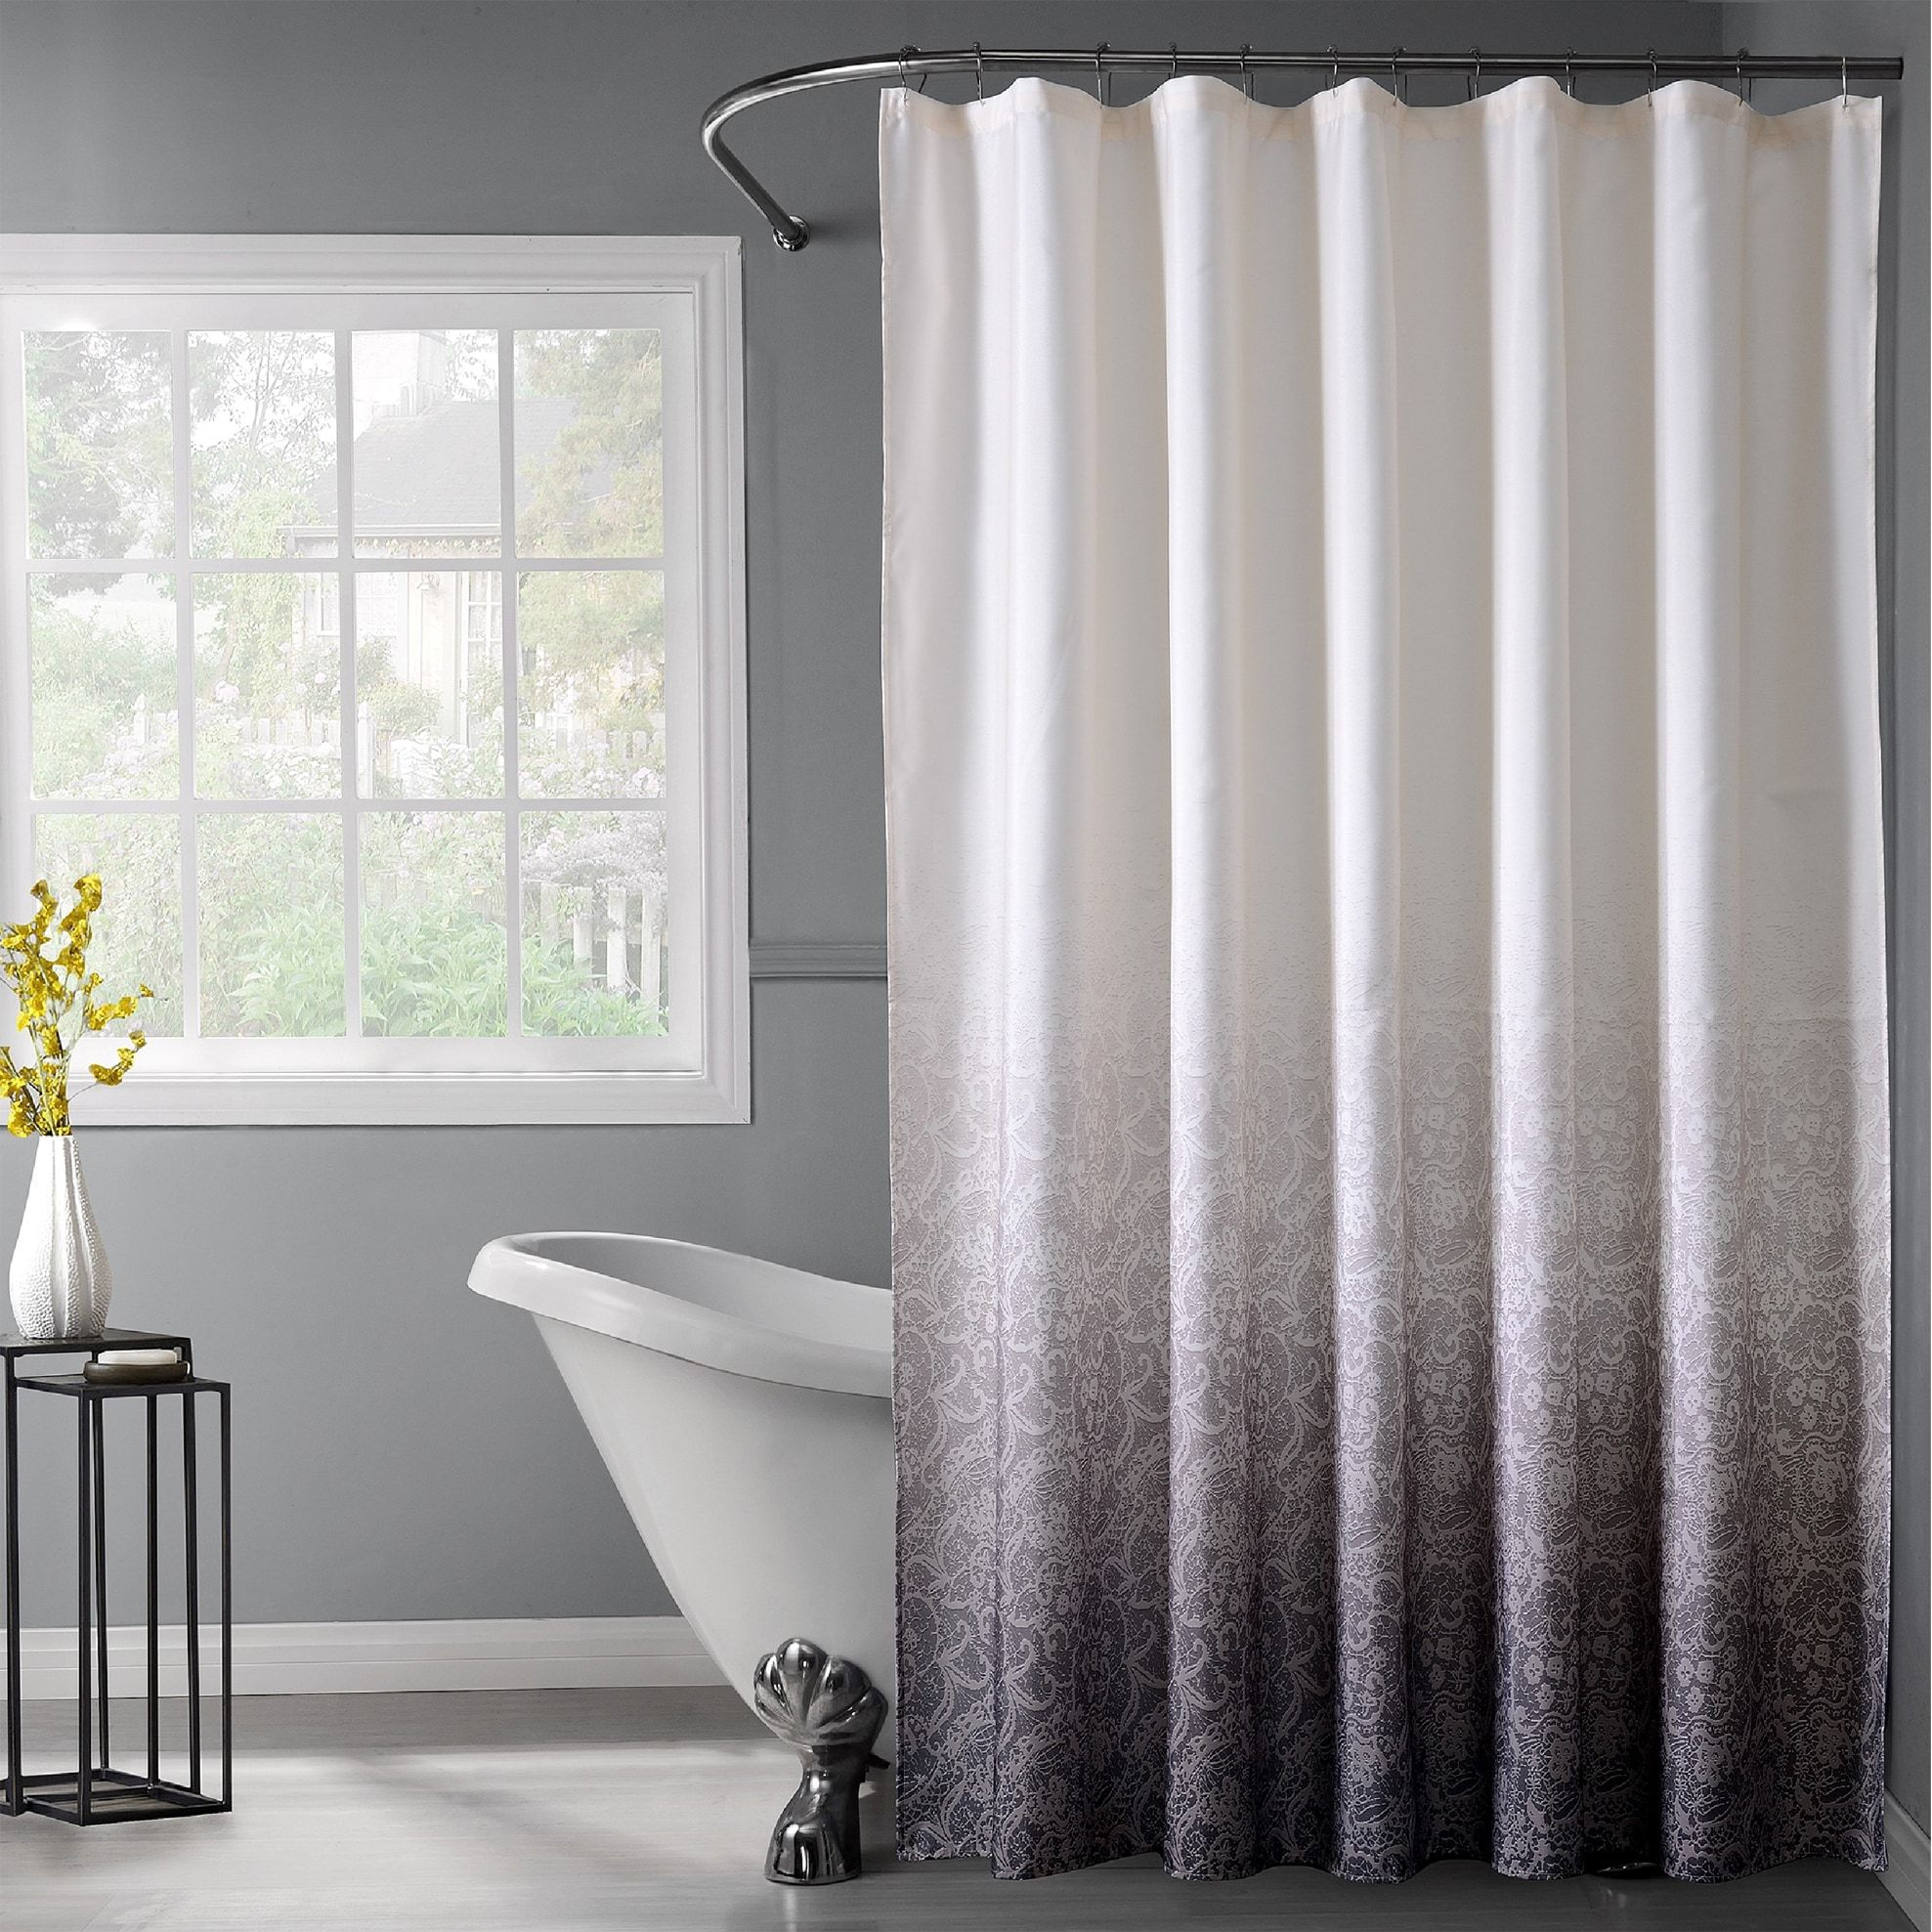 Dainty Home Lace Ombre Shower Curtain Black